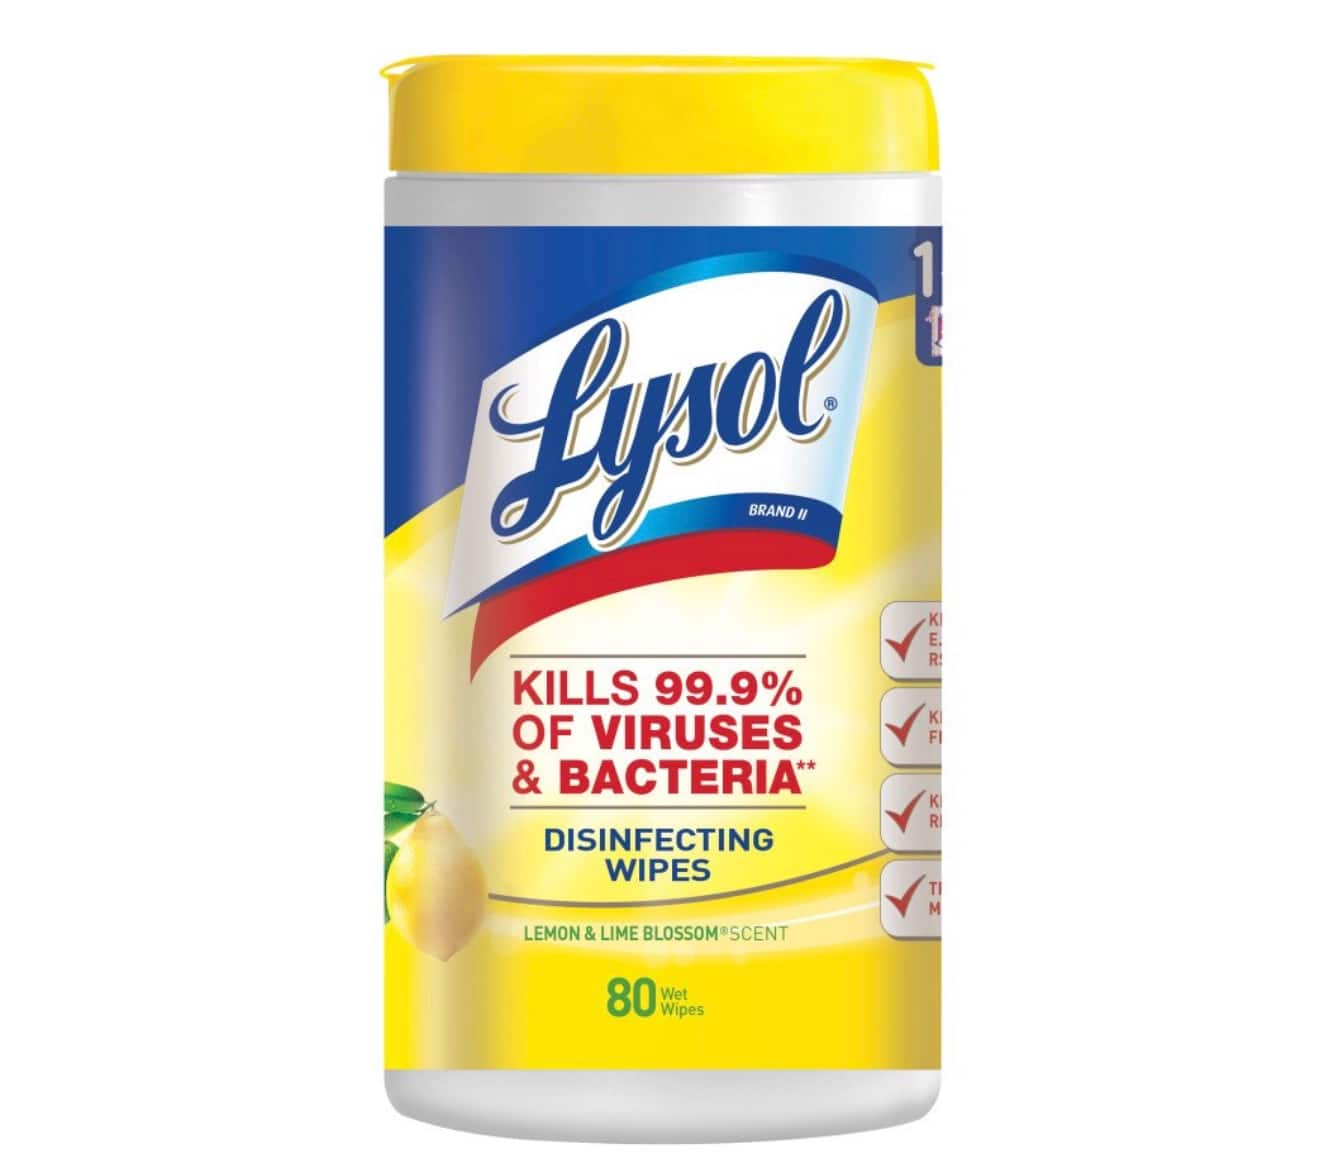 80-Count Lysol Disinfecting Wipes (Lemon & Lime Blossom), Back in stock, Prime Only